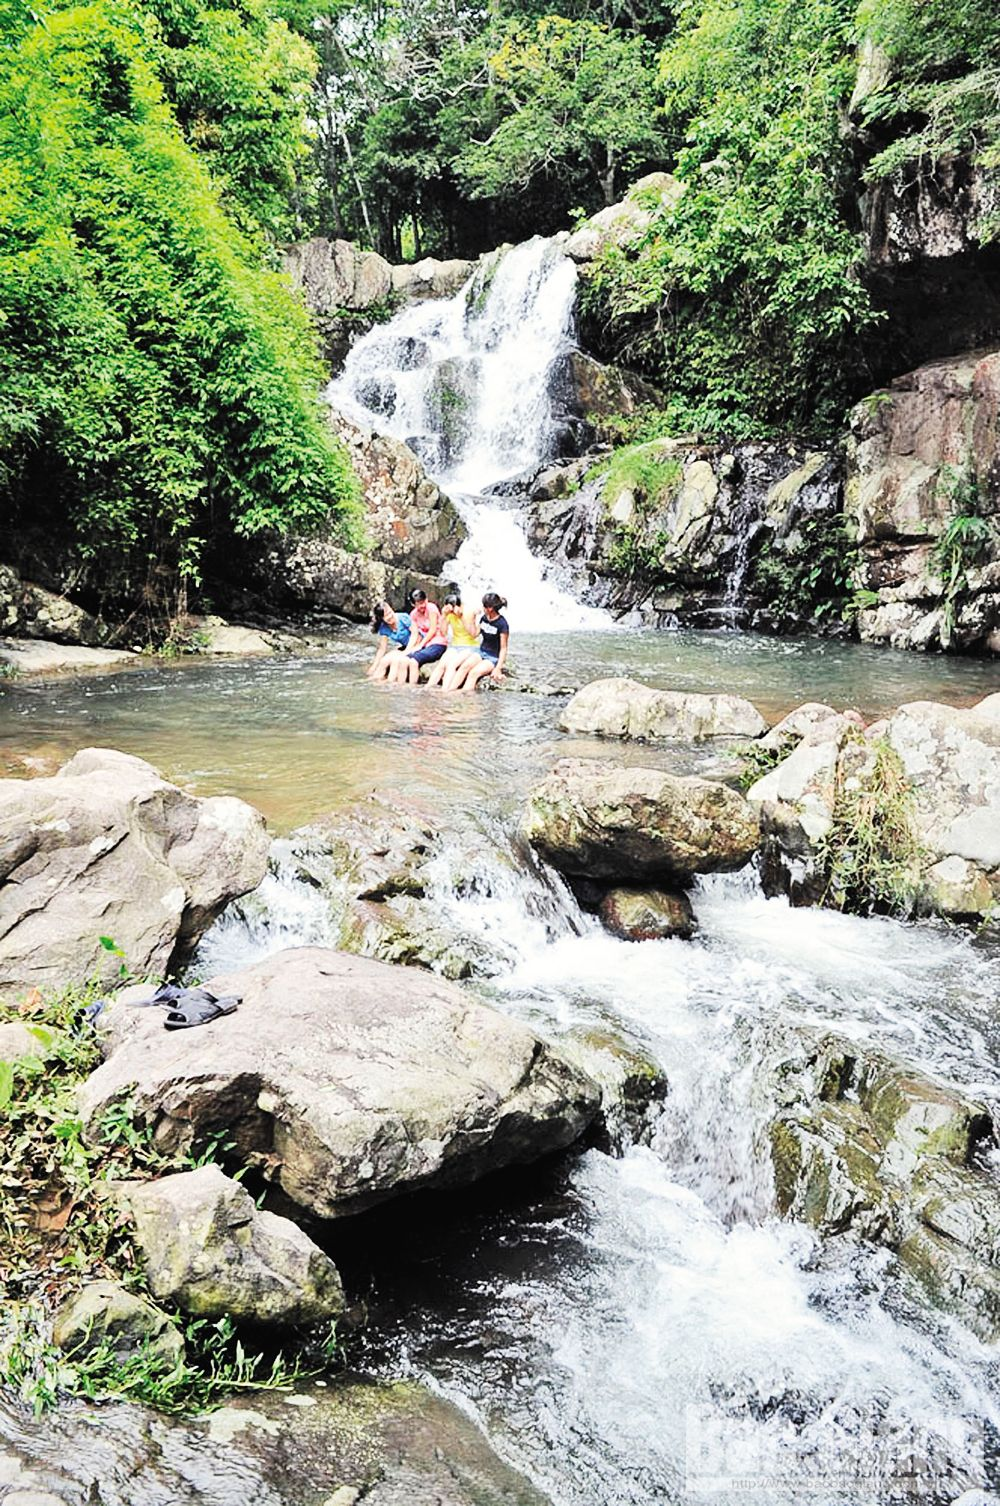 Attractive destinations, spiritual road, Bac Giang province, transport and geological advantages, Son Dong district, spectacular ranges of mountain, charming landscapes, natural waterfall, primitive forests